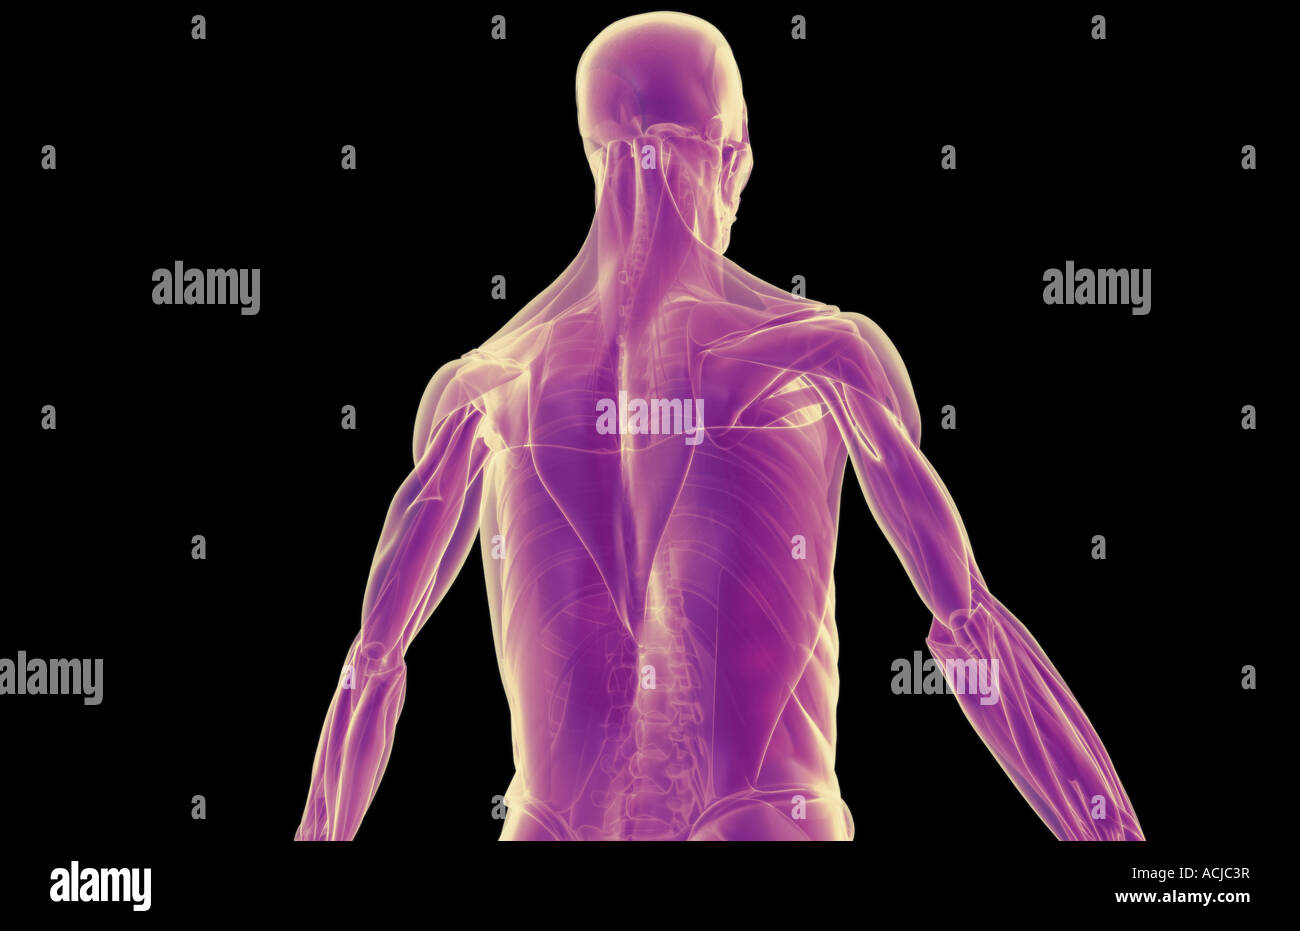 The Muscles Of The Upper Body Stock Photo 13169002 Alamy